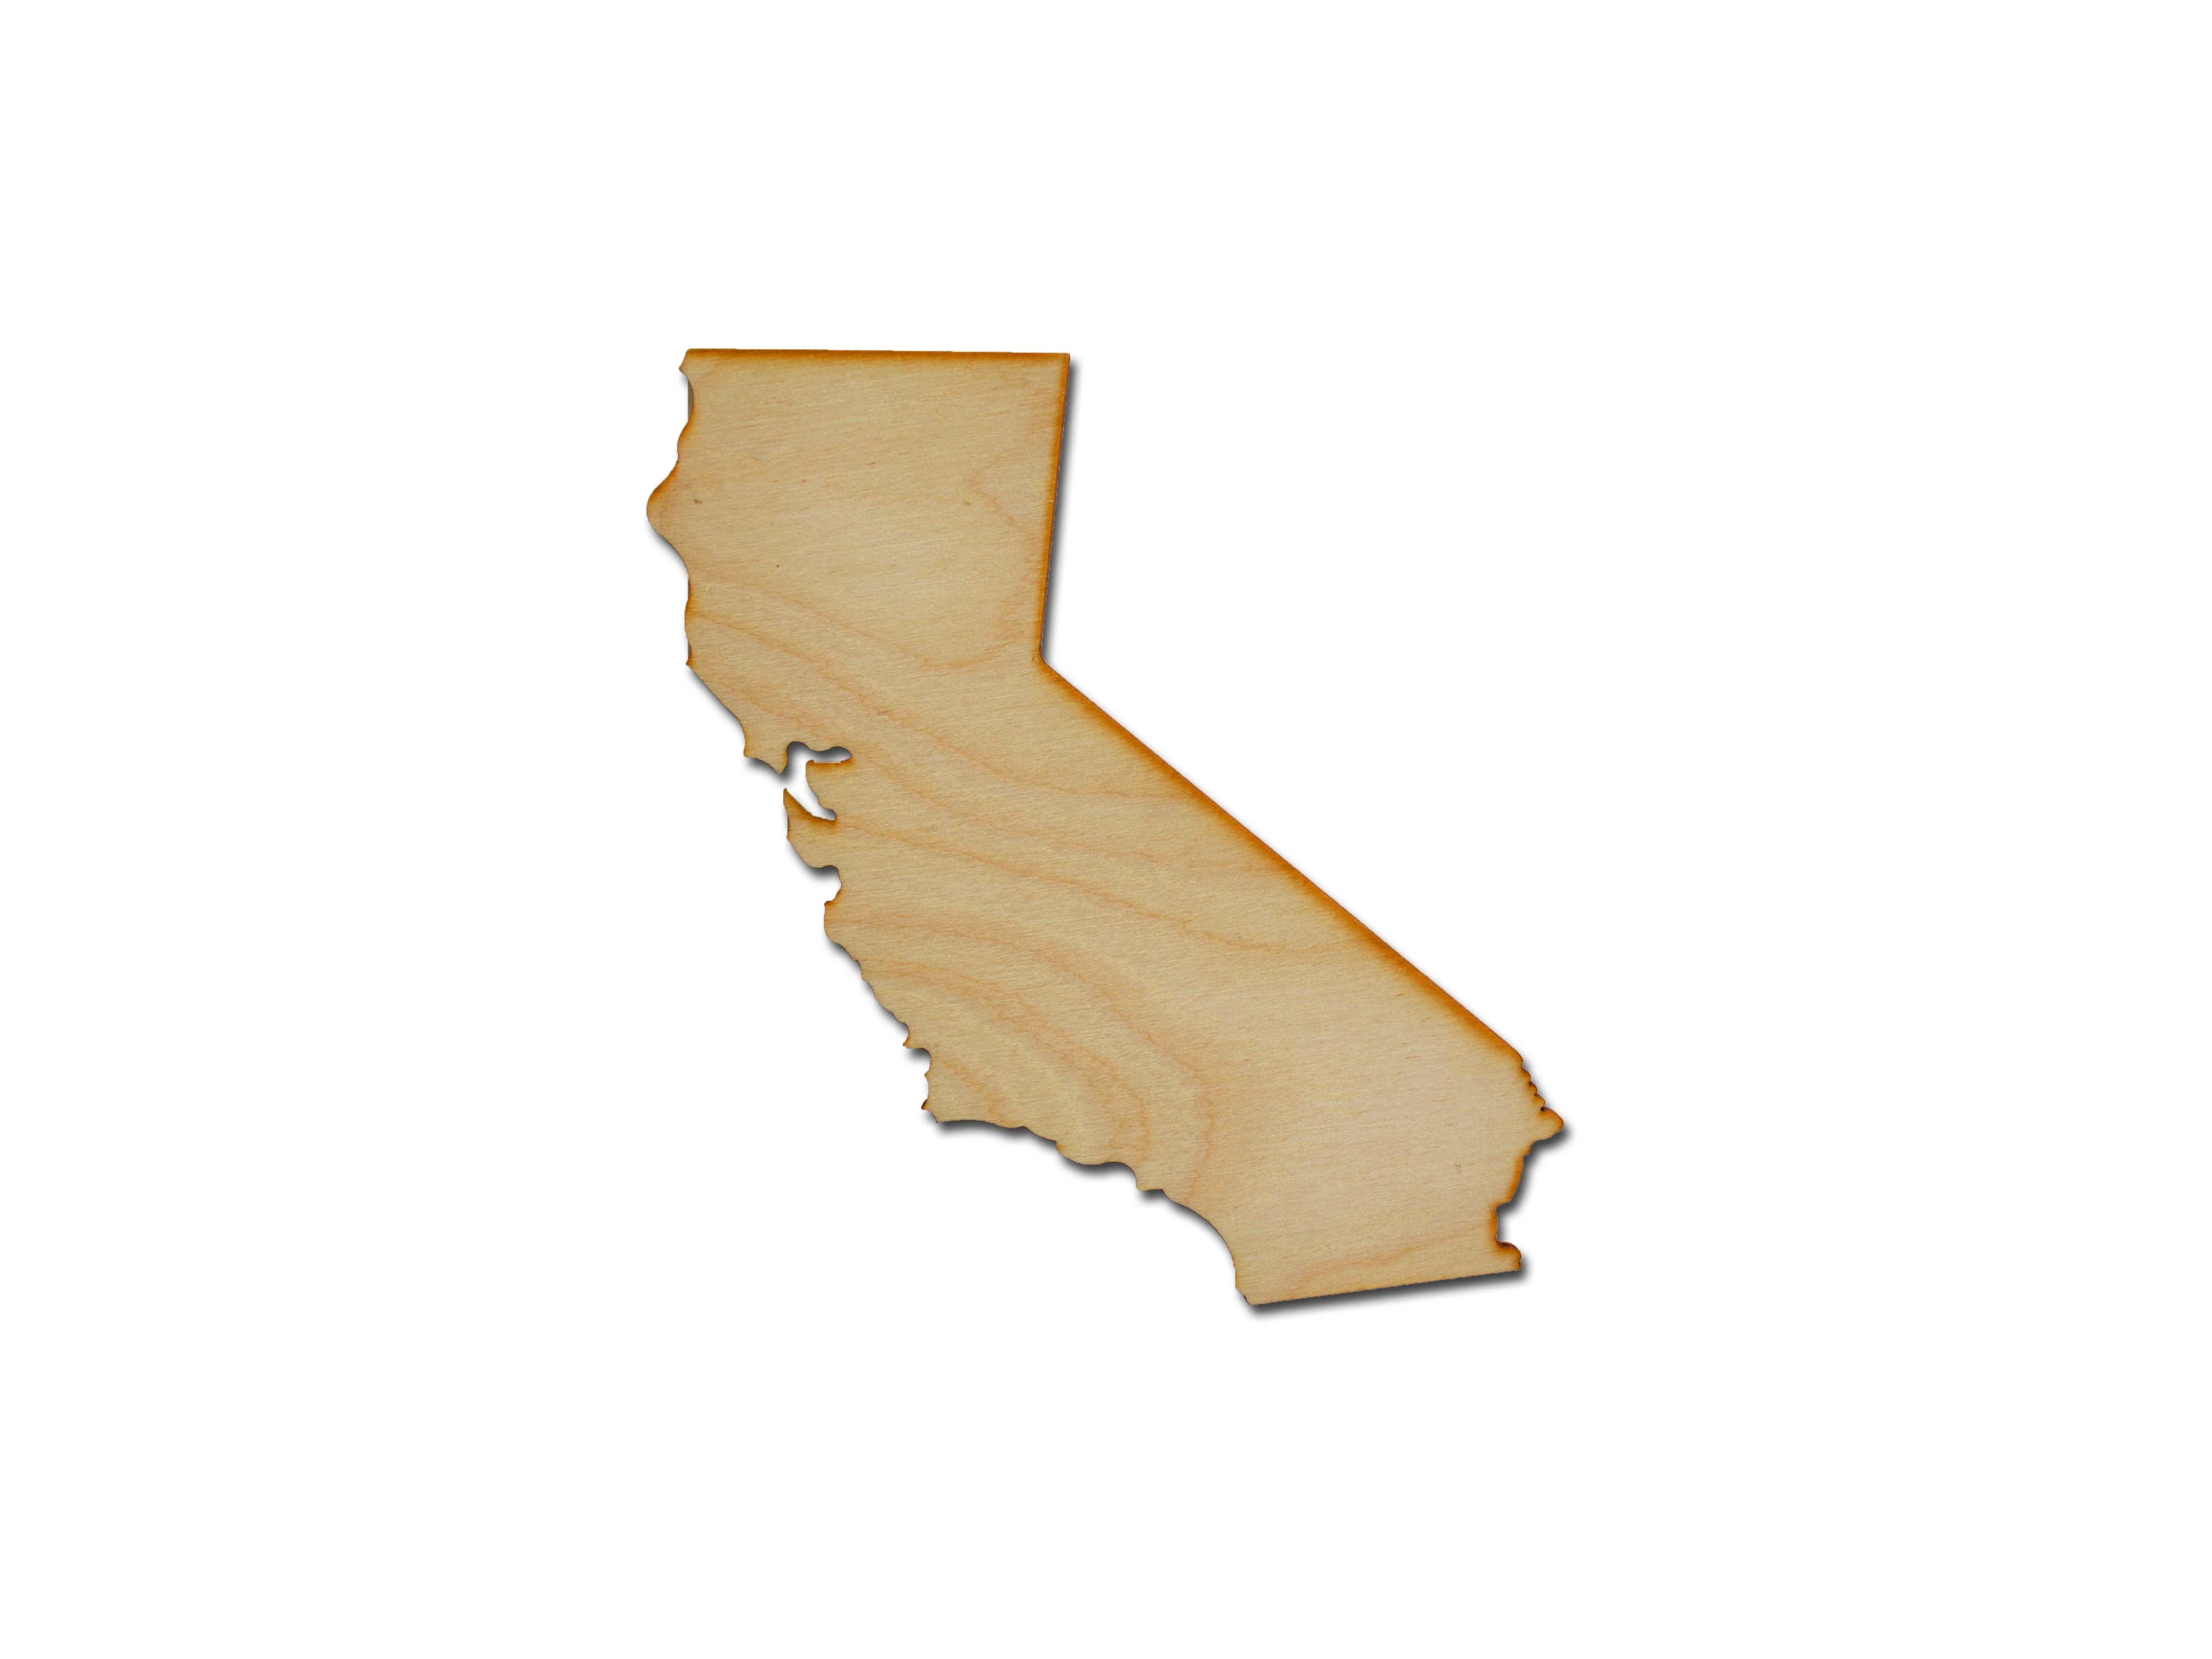 California State Shape Wood Cutout